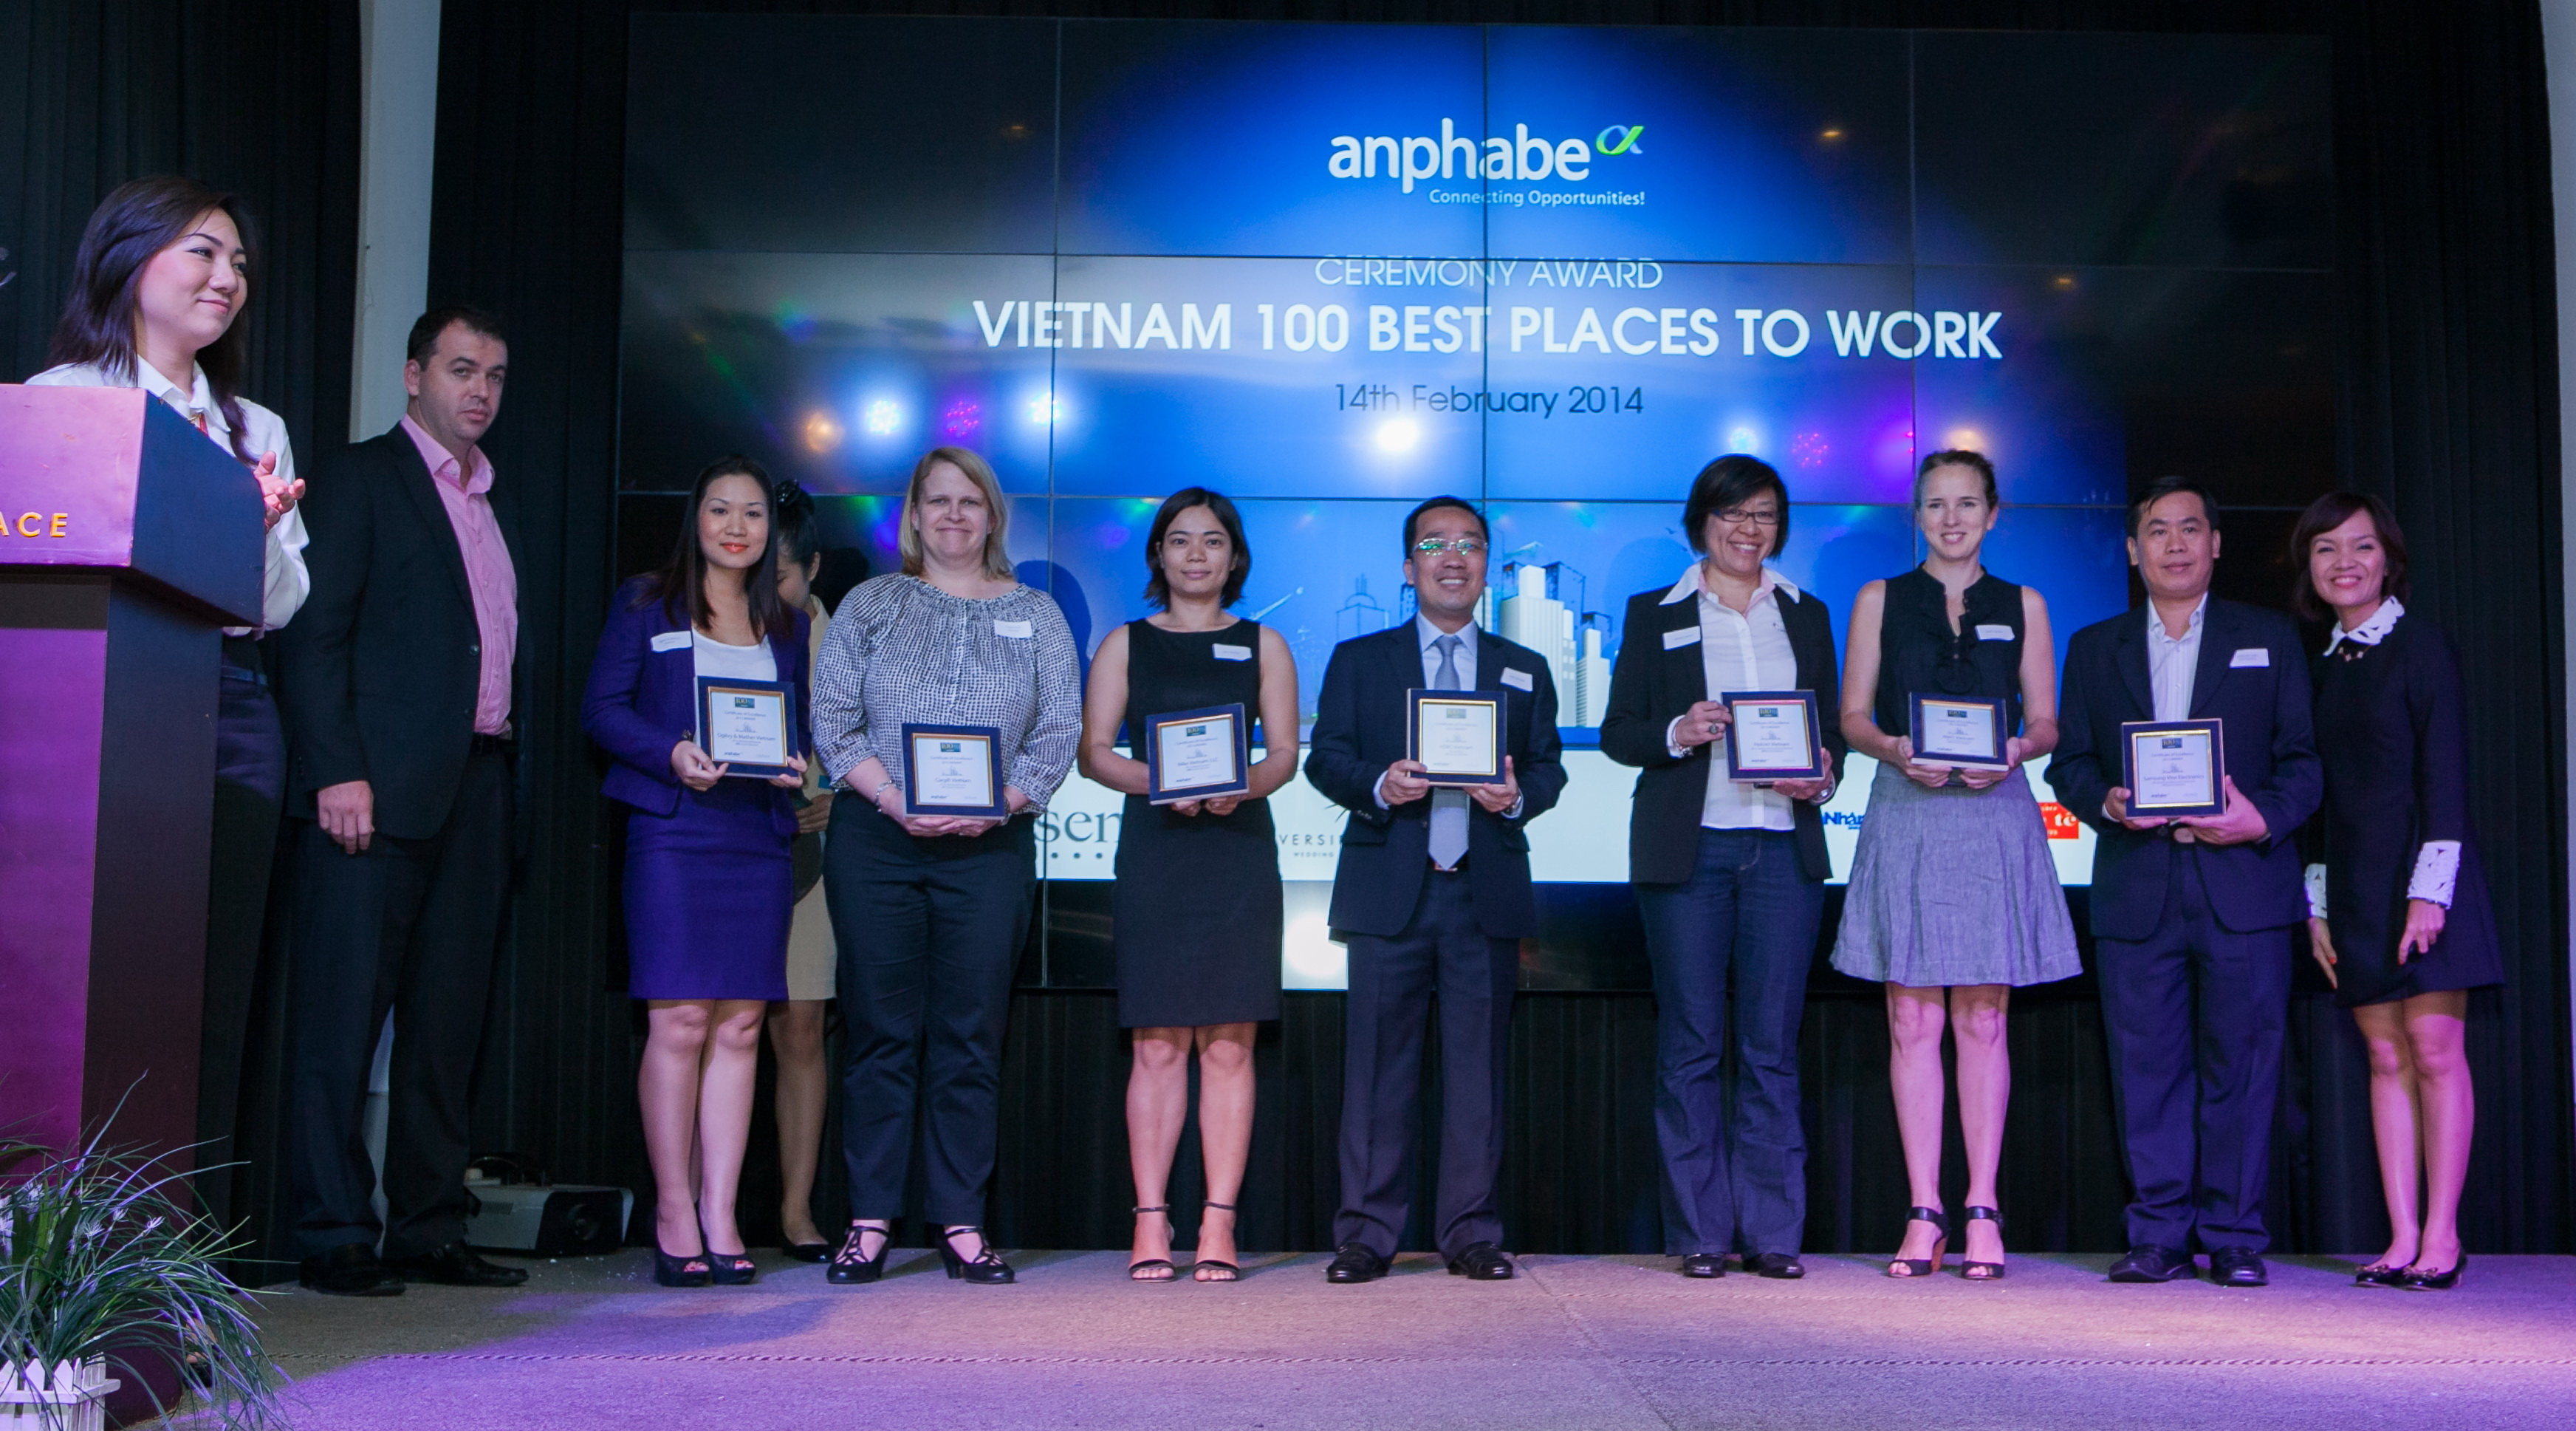 Anphabe to survey 100 best places to work in Vietnam